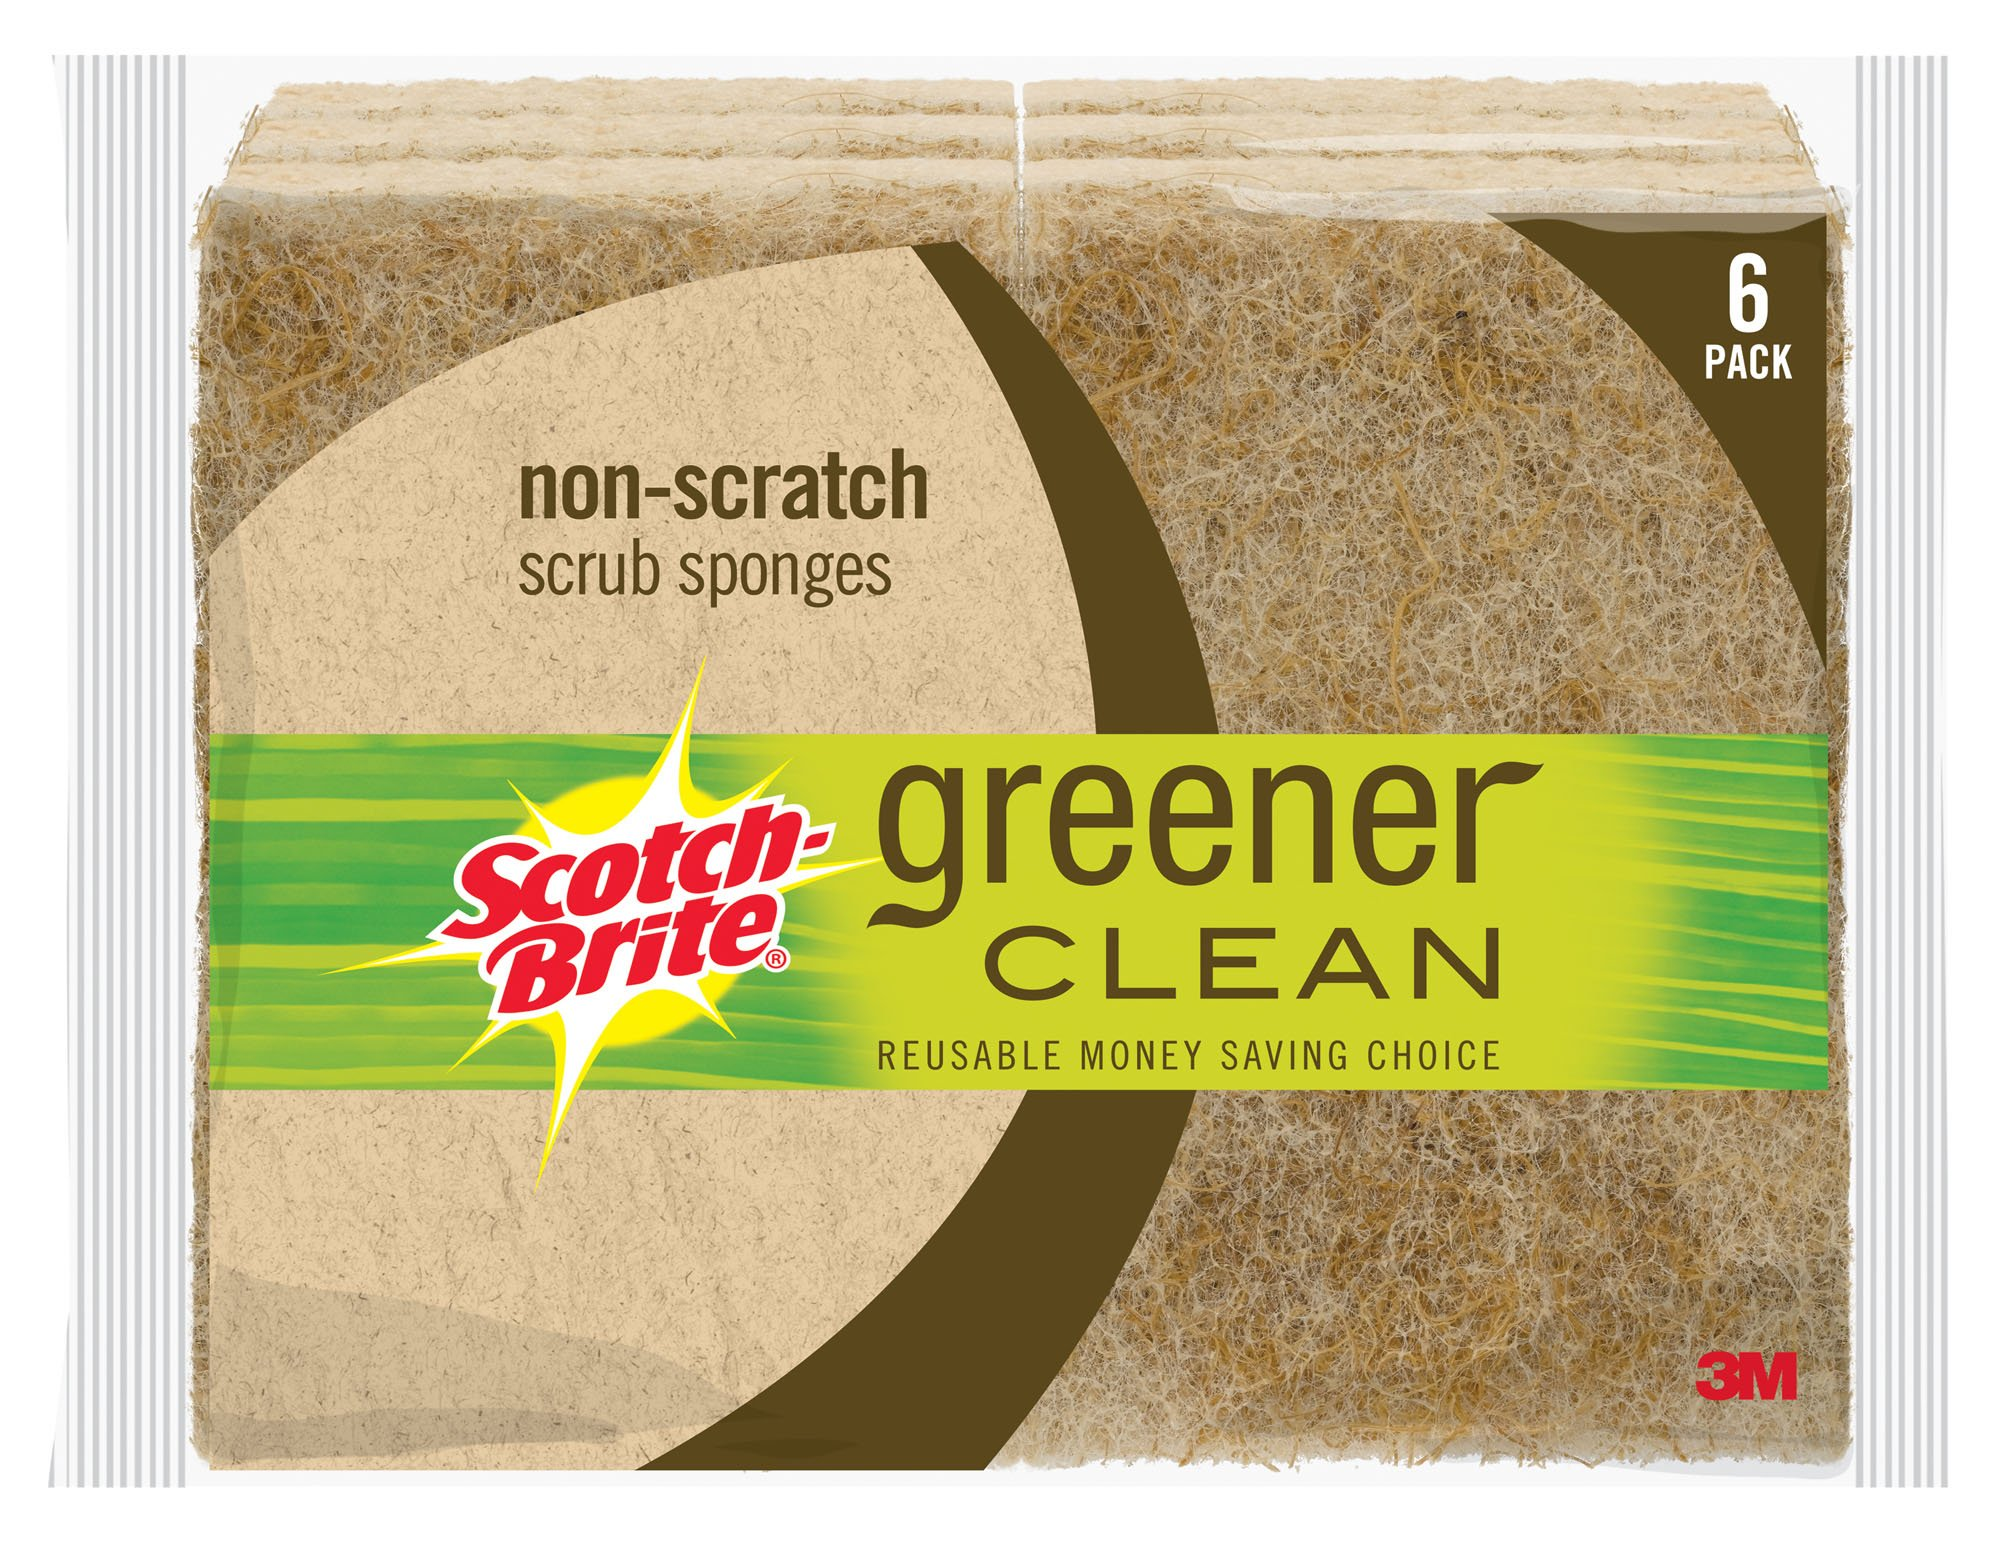 Scotch-Brite Greener Clean Non-Scratch Scrub Sponges, Made from Plants, Stands Up to Stuck-on Grime, 6 Scrub Sponges